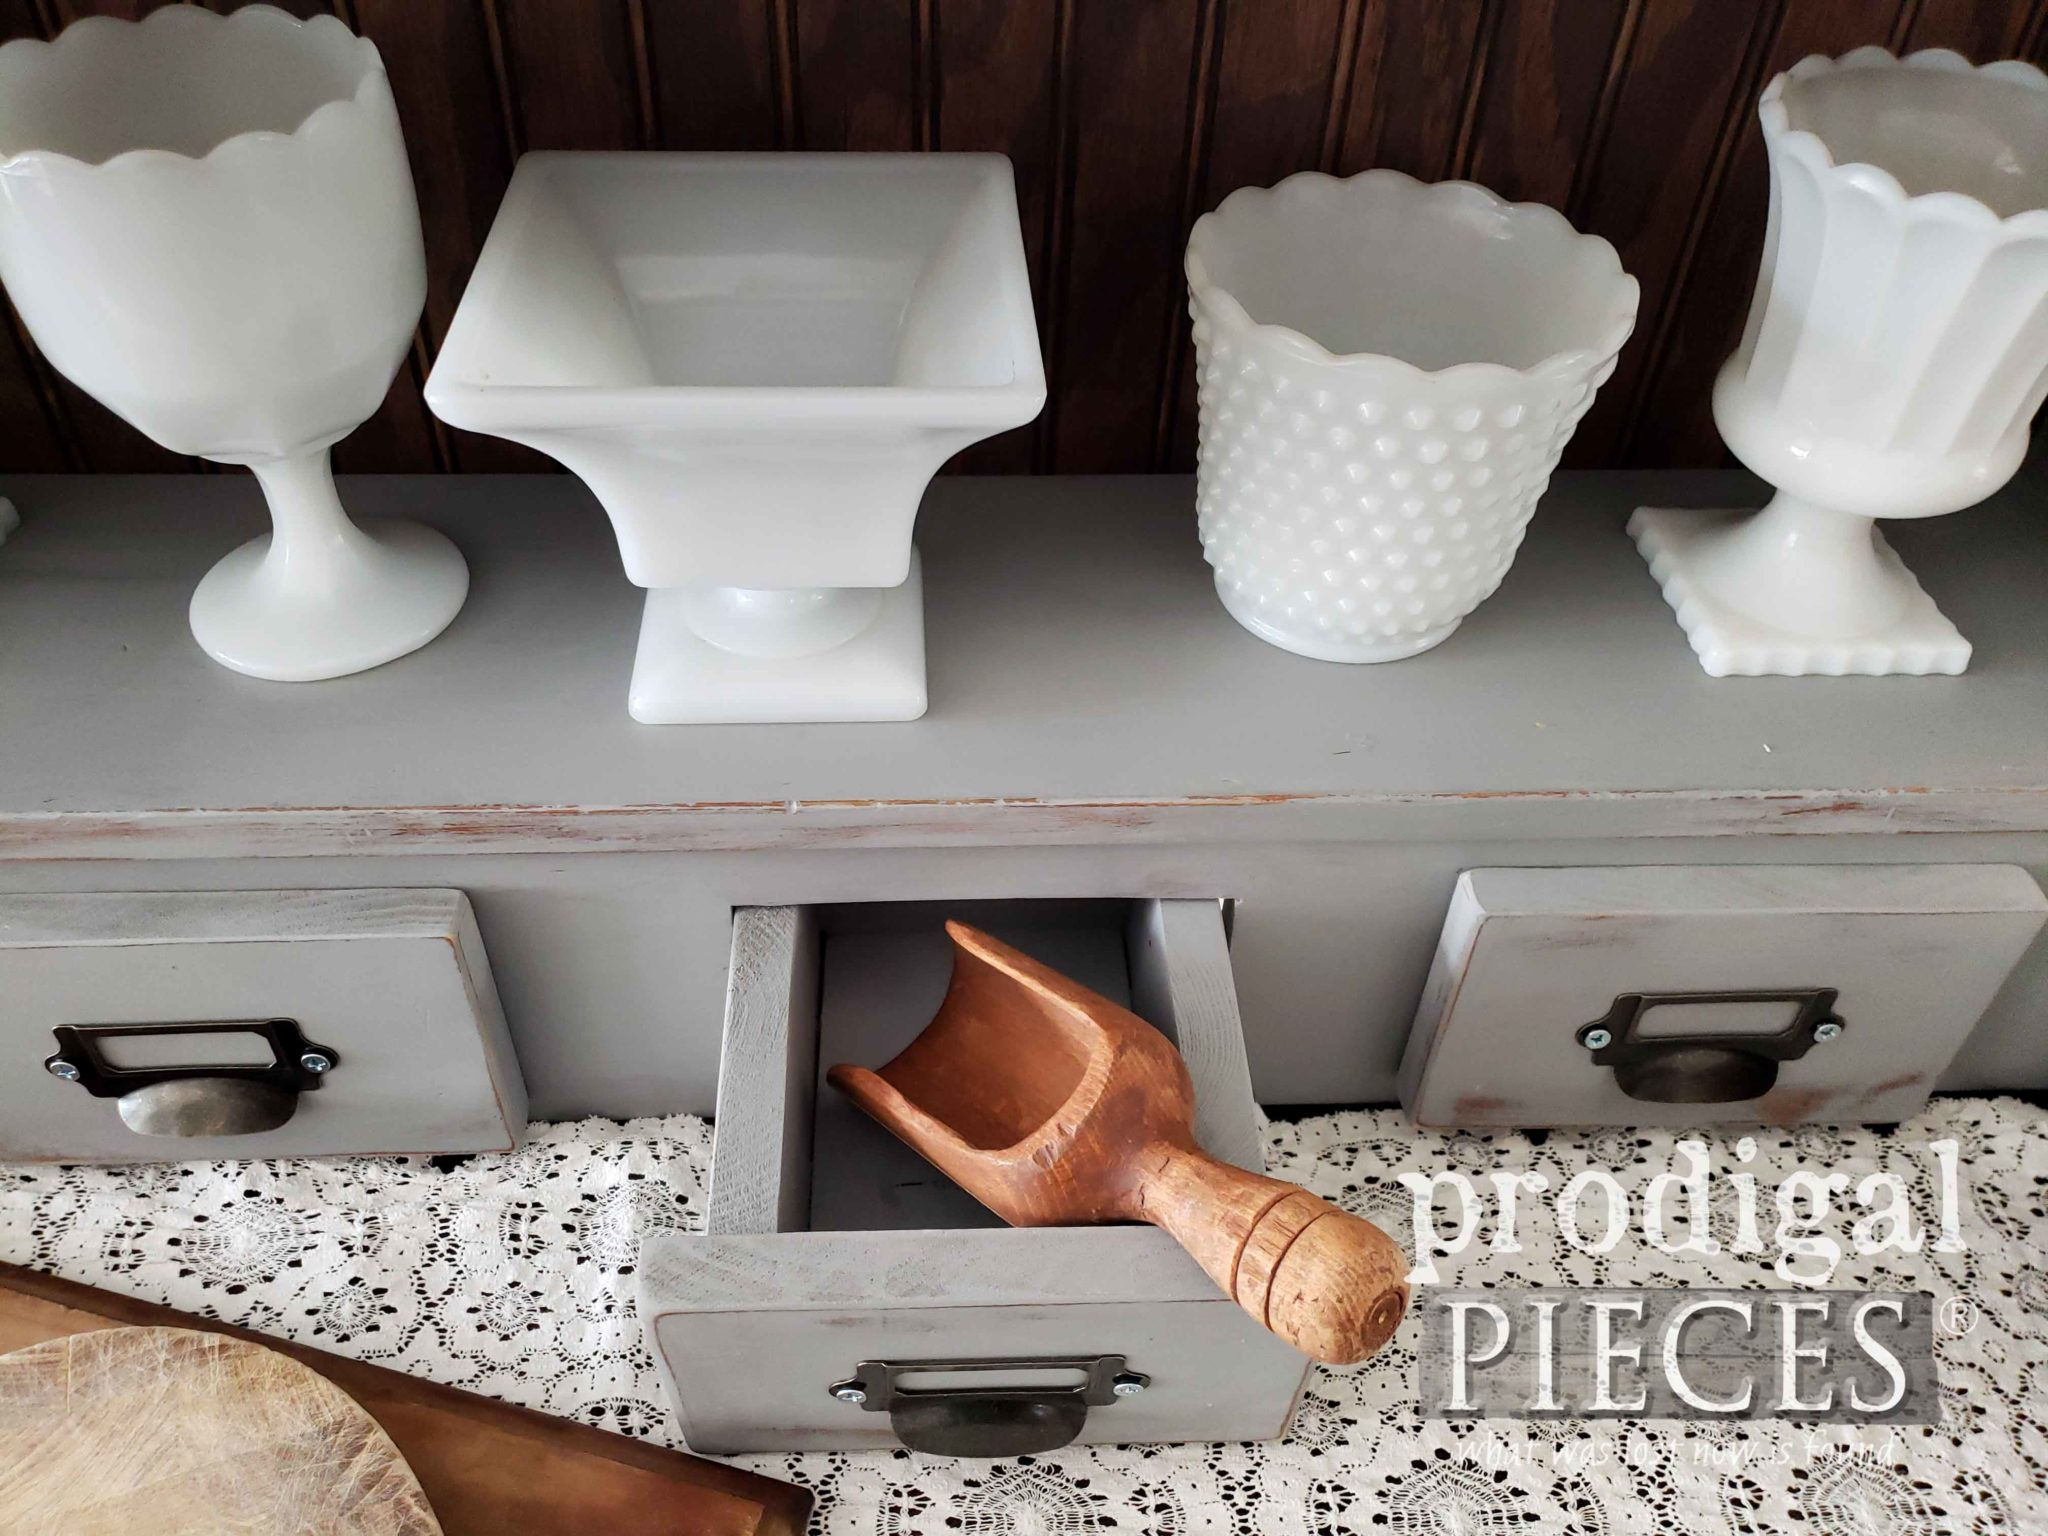 Farmhouse Style Home Decor Created by Larissa of Prodigal Pieces | prodigalpieces.com #prodigalpieces #handmade #home #diy #farmhouse #homedecor